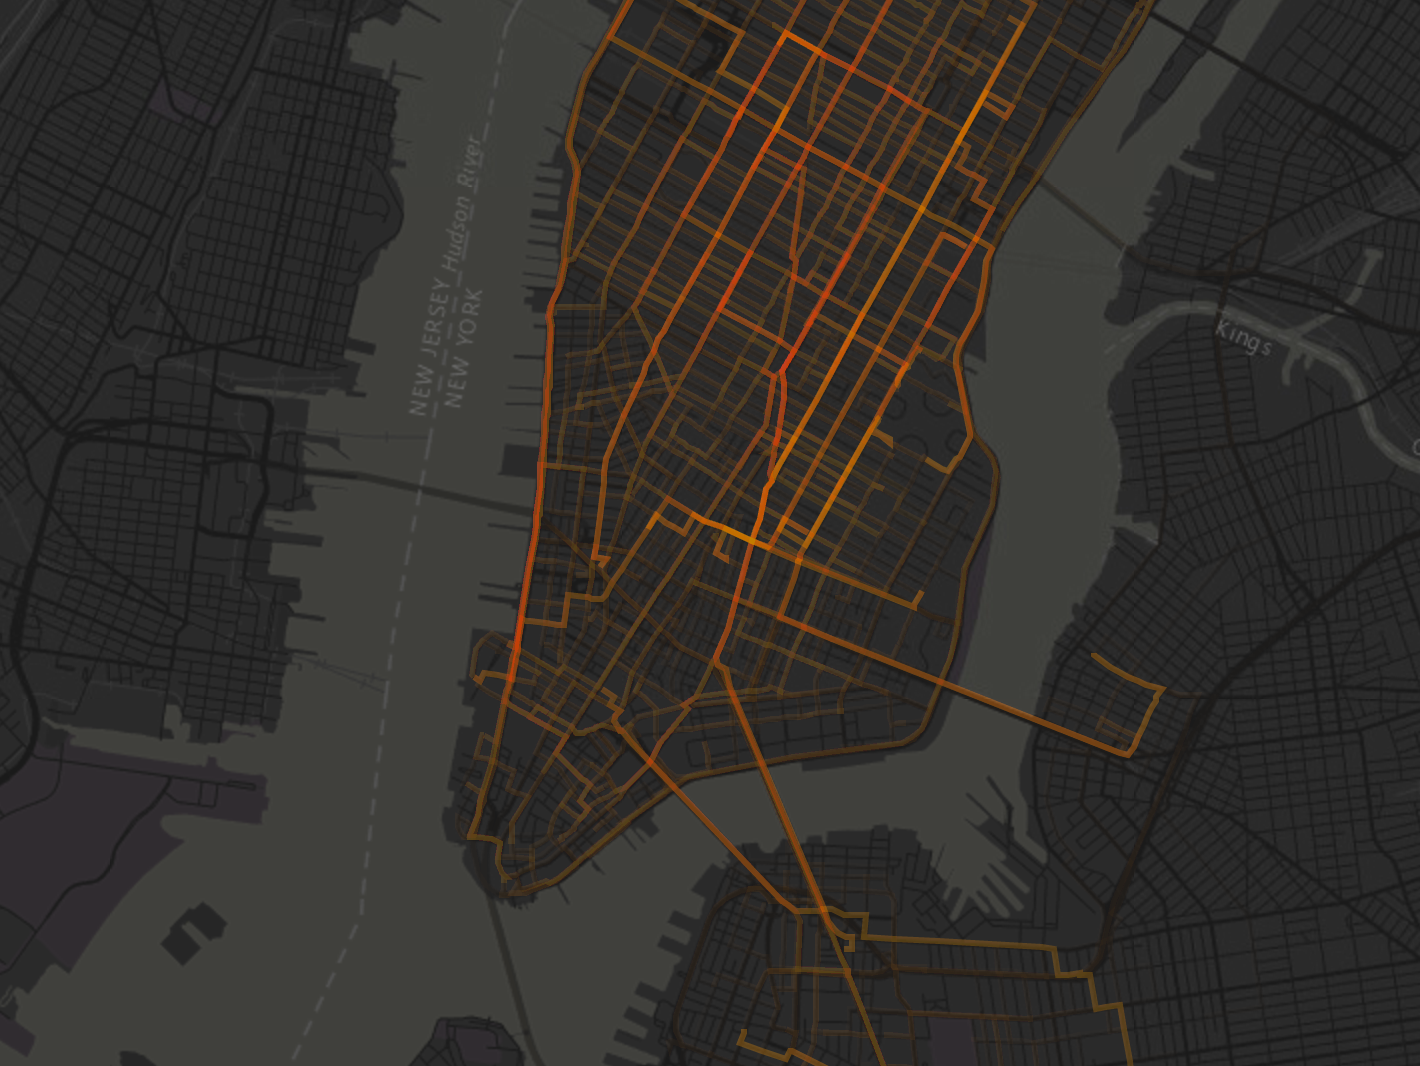 This Map Shows How Bicycles Weave Through NYC by the Hour